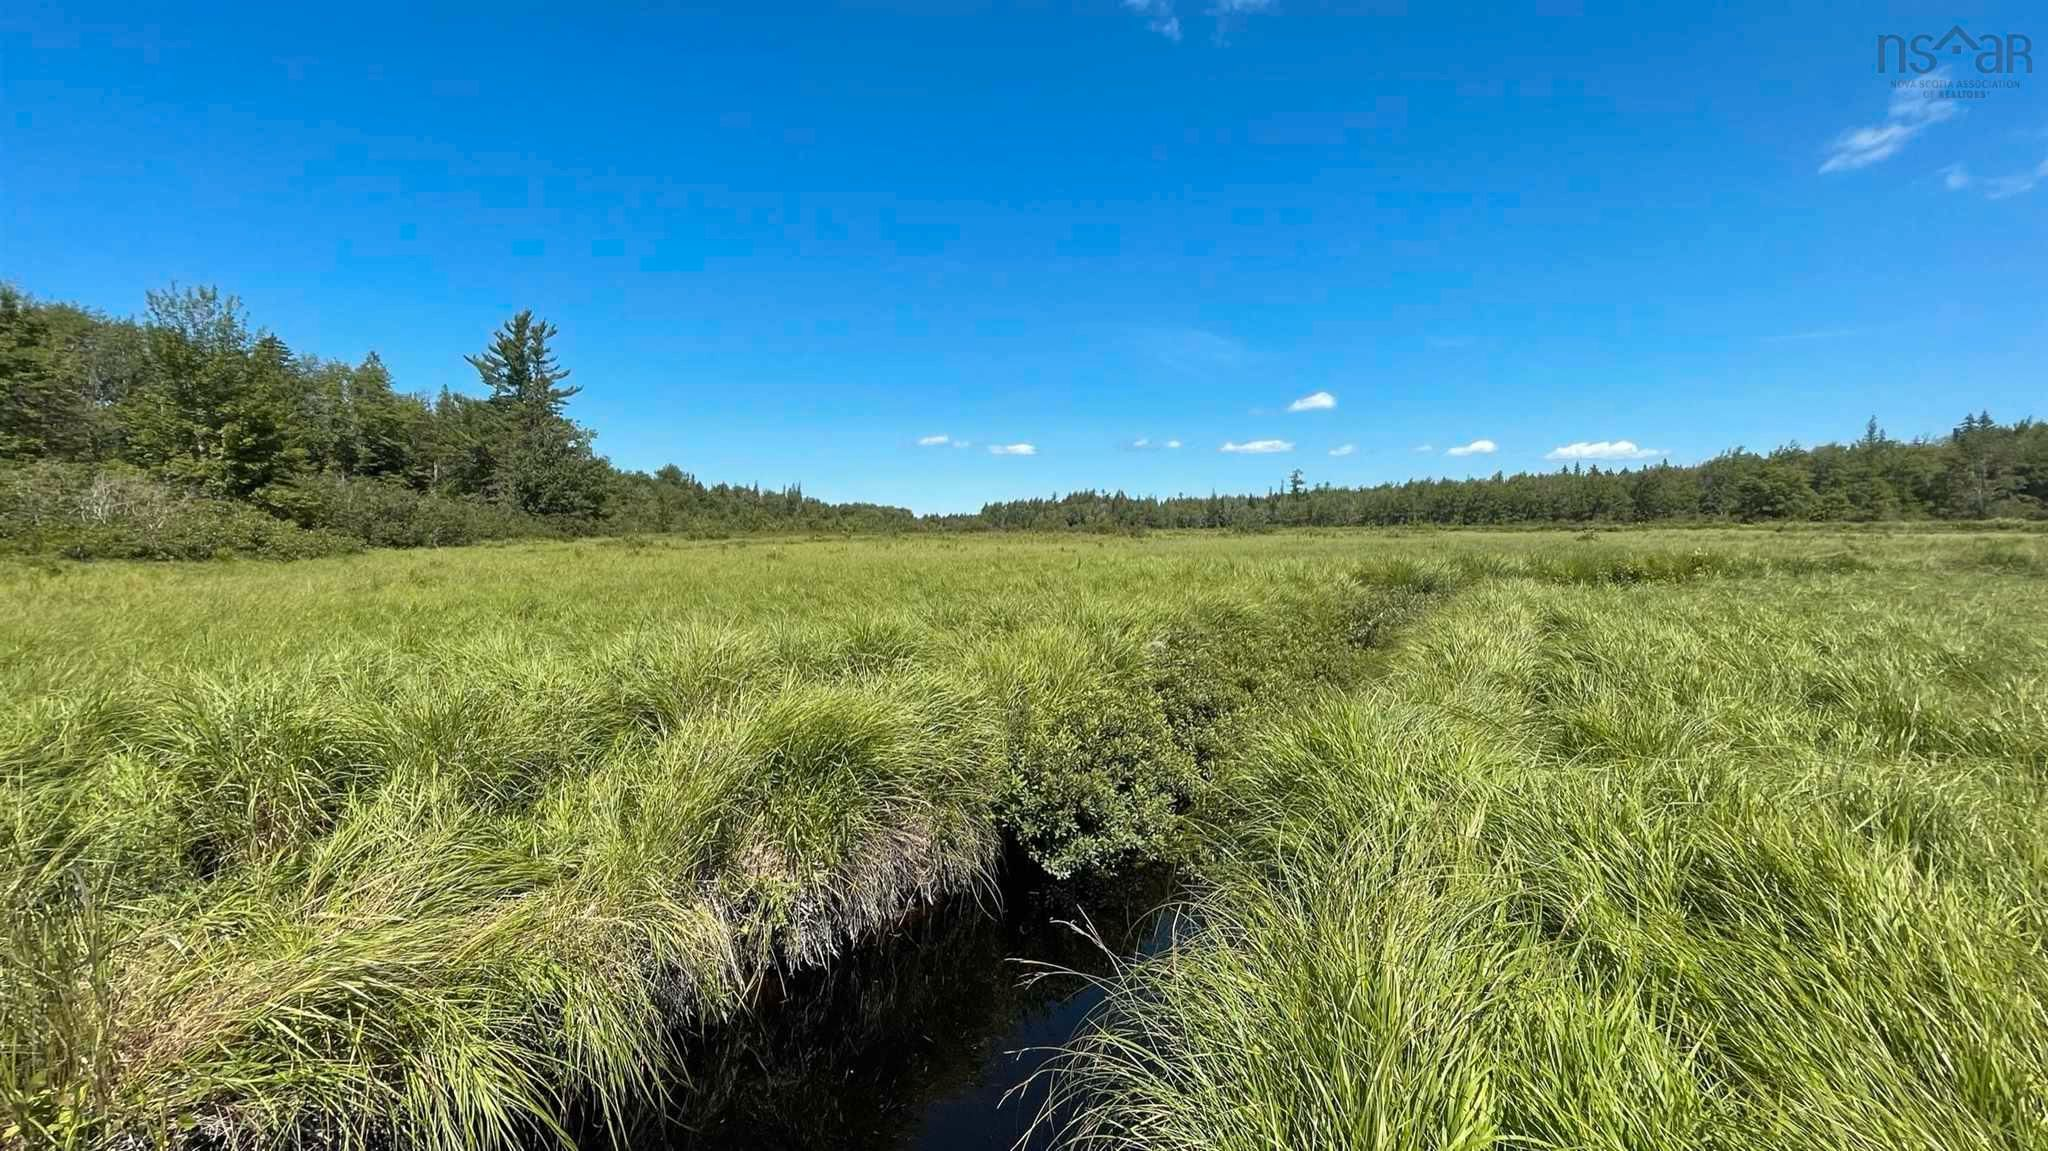 Main Photo: Lot New Albany in New Albany: 400-Annapolis County Vacant Land for sale (Annapolis Valley)  : MLS®# 202120180